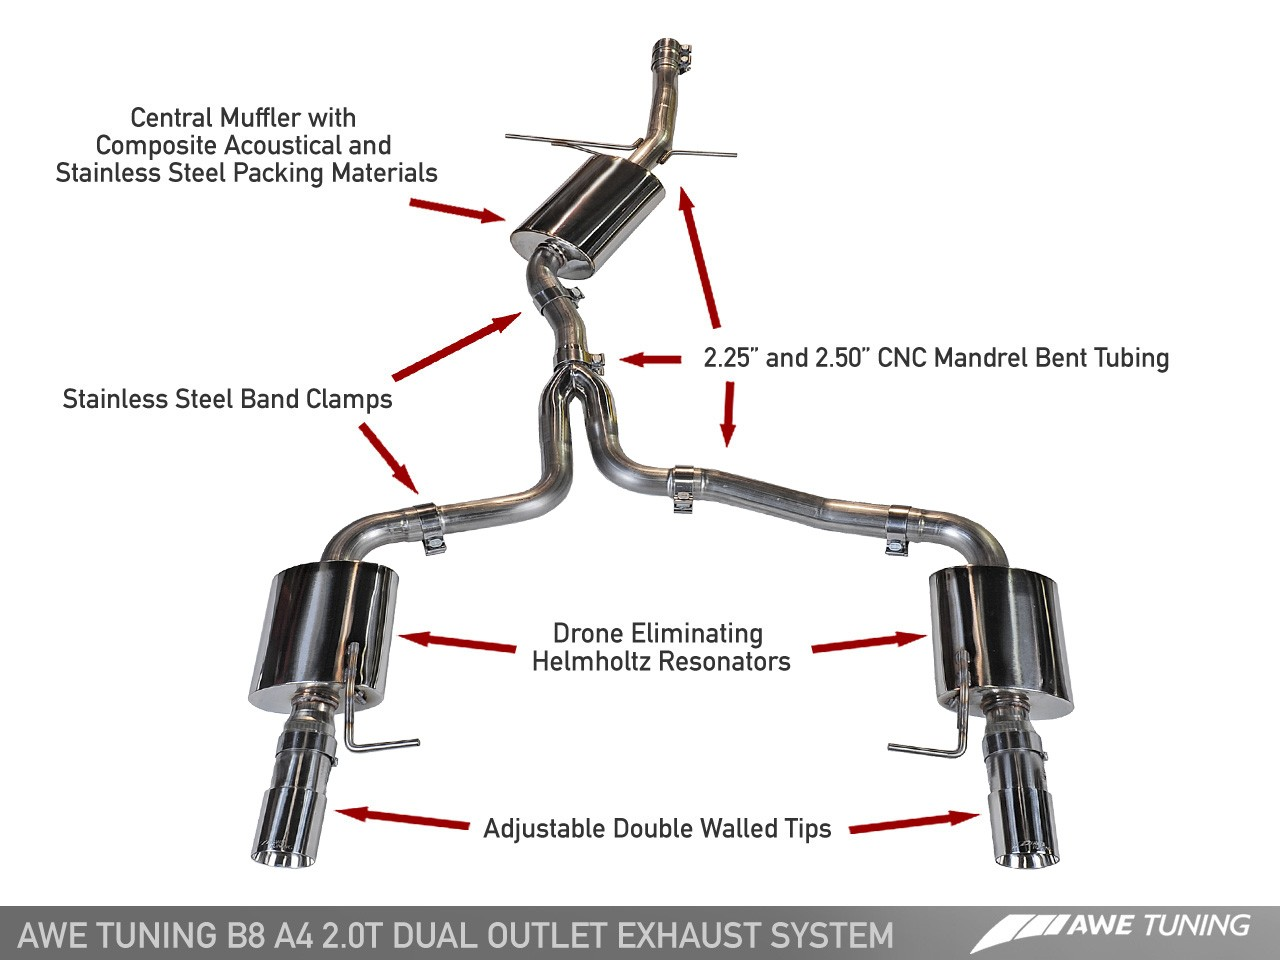 audi a4 exhaust system diagram wiring for jackson guitar awe tuning b8 2 0t touring edition and downpipe